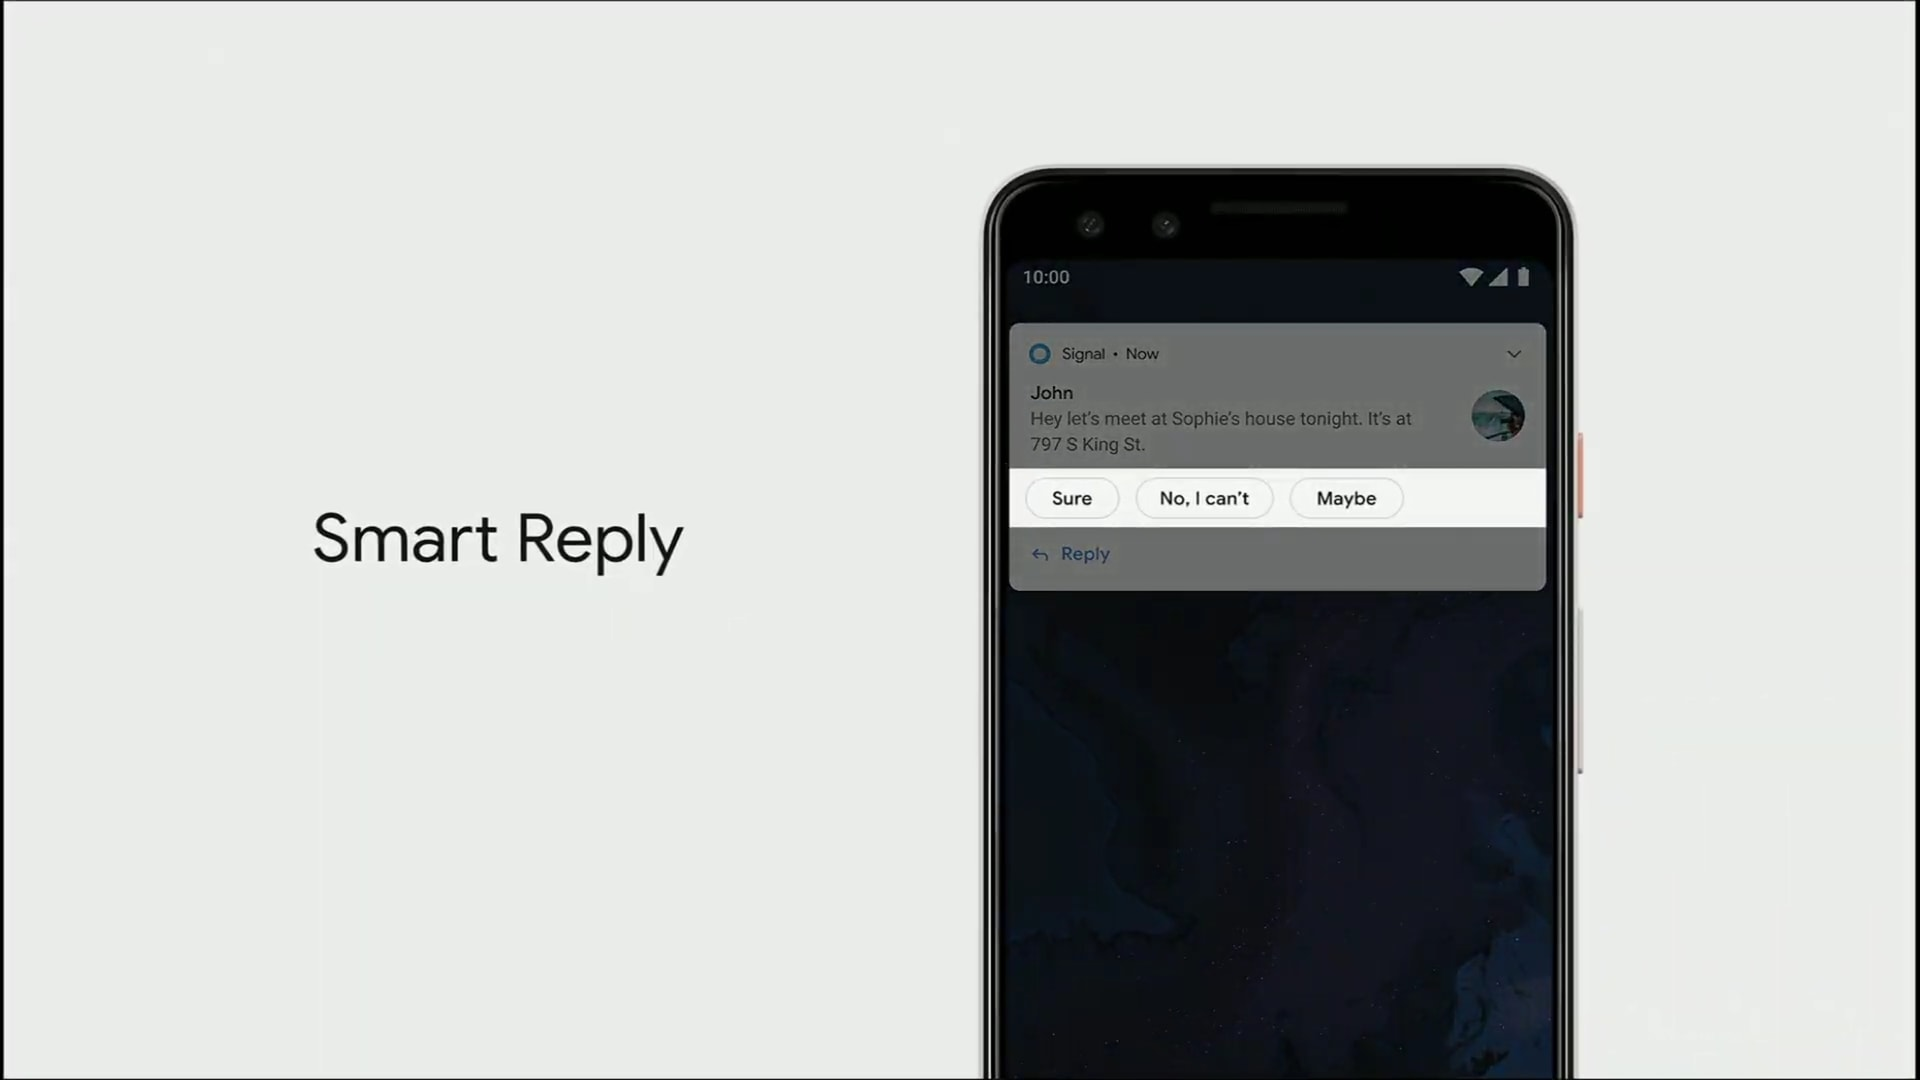 Response Quickly with Smart Reply